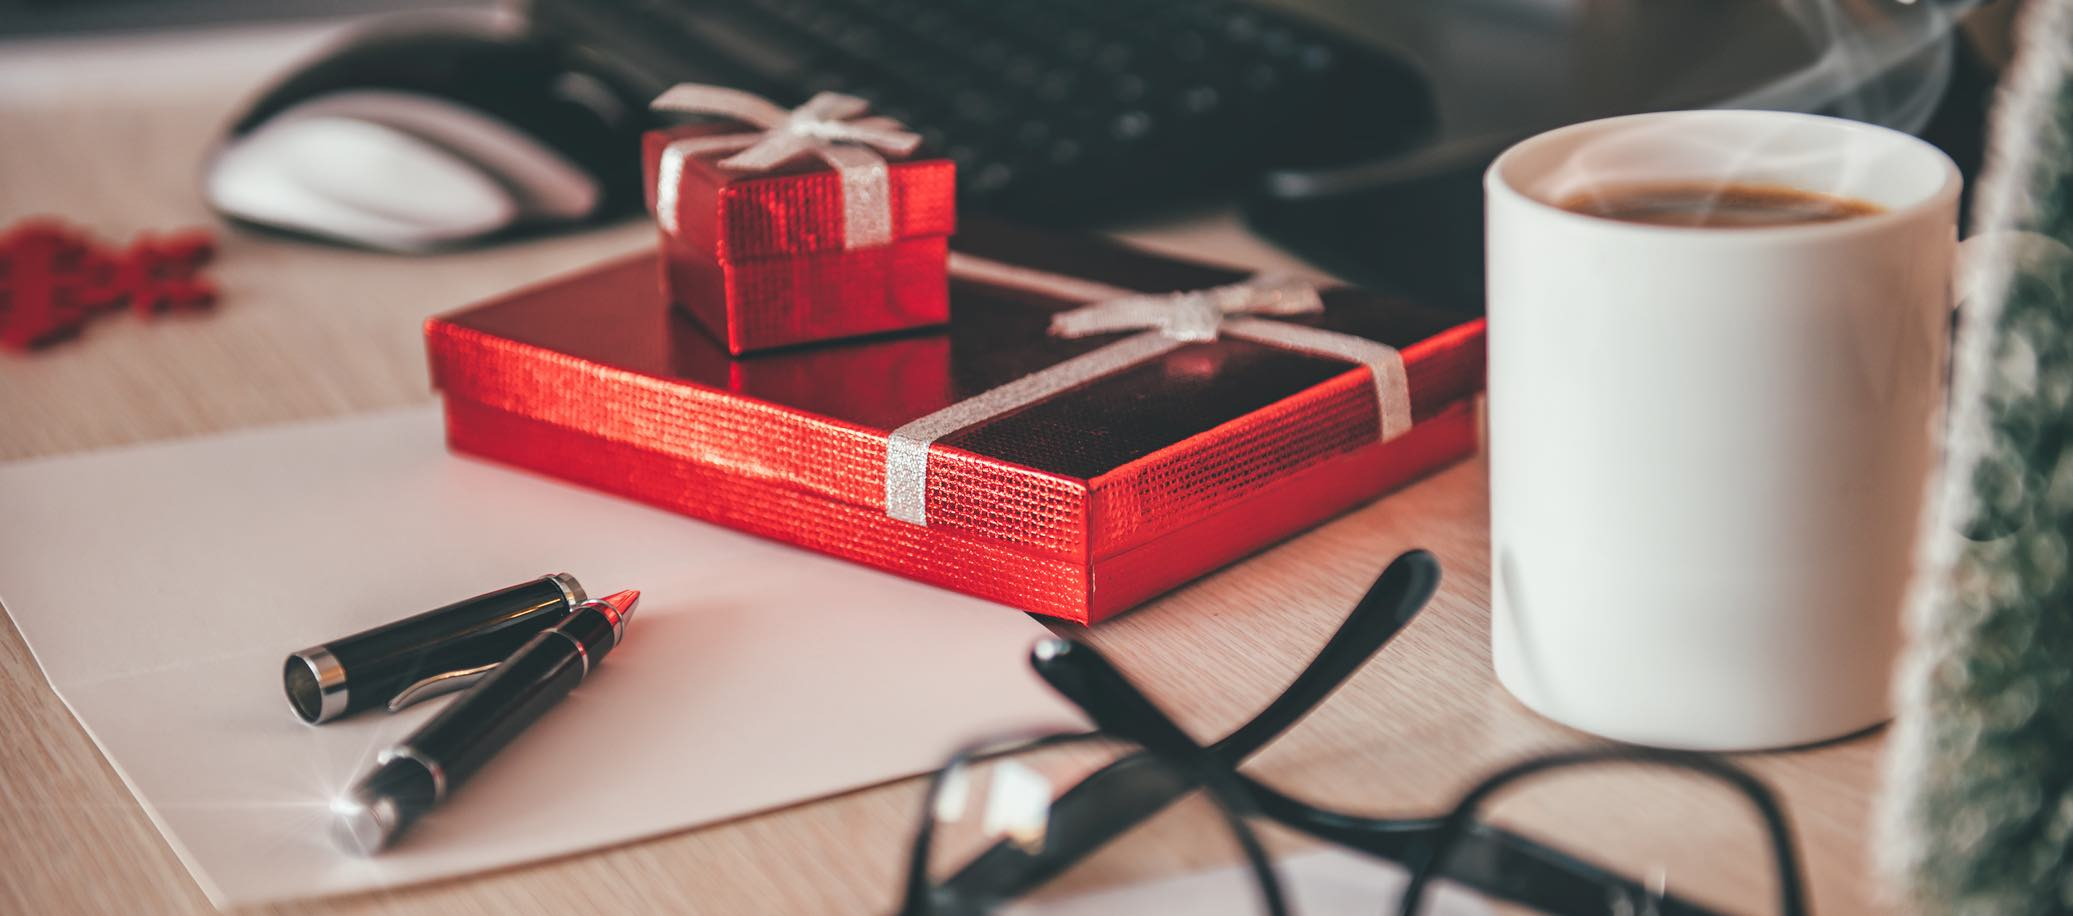 Employee gift ideas made of chocolate